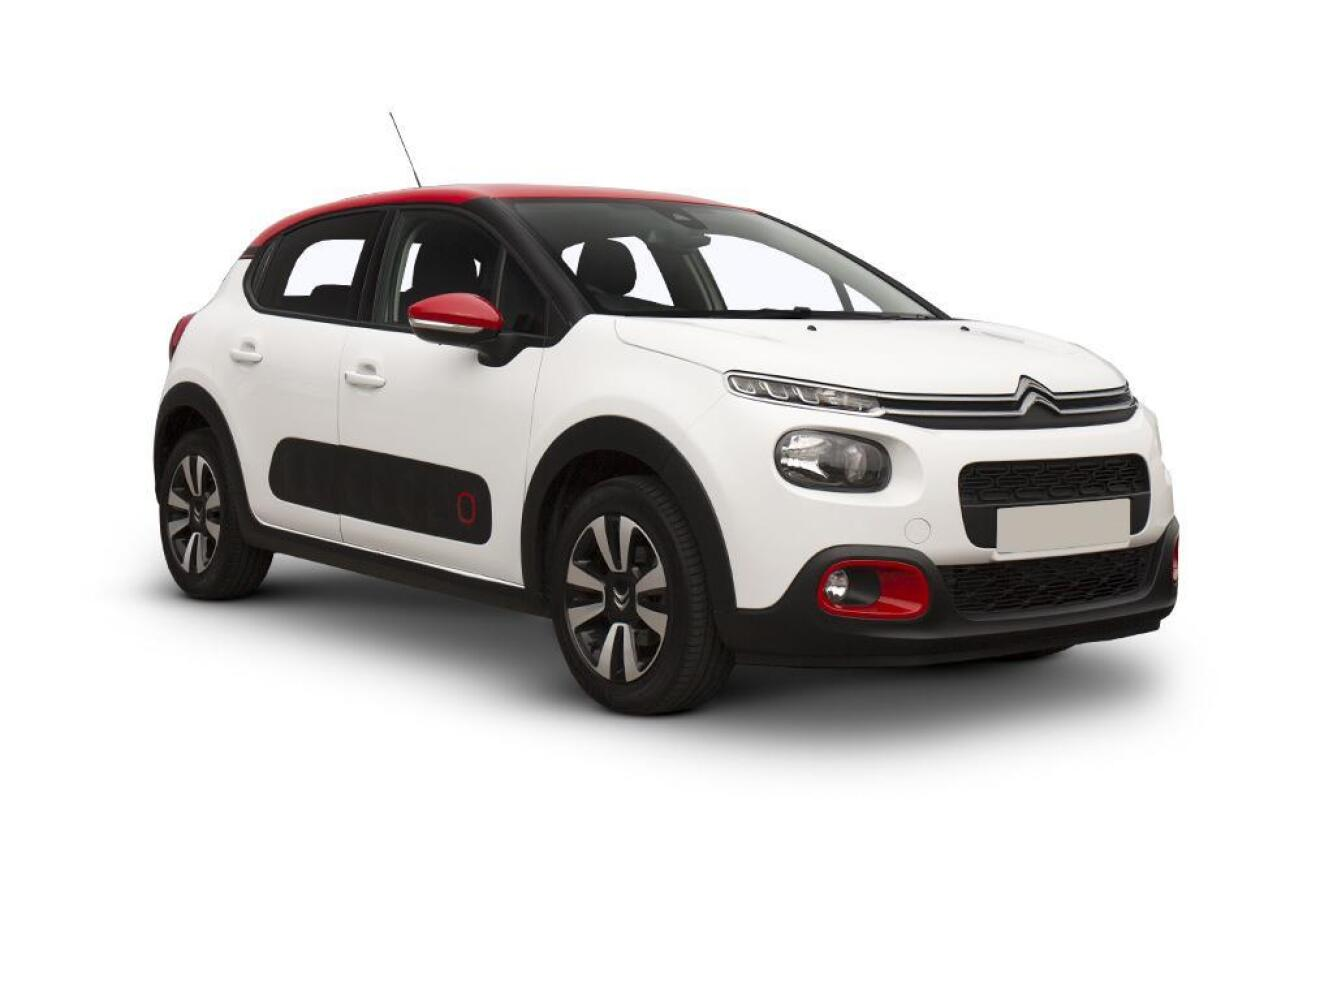 new citroen c3 1 5 bluehdi 100 feel 5dr diesel hatchback for sale bristol street. Black Bedroom Furniture Sets. Home Design Ideas